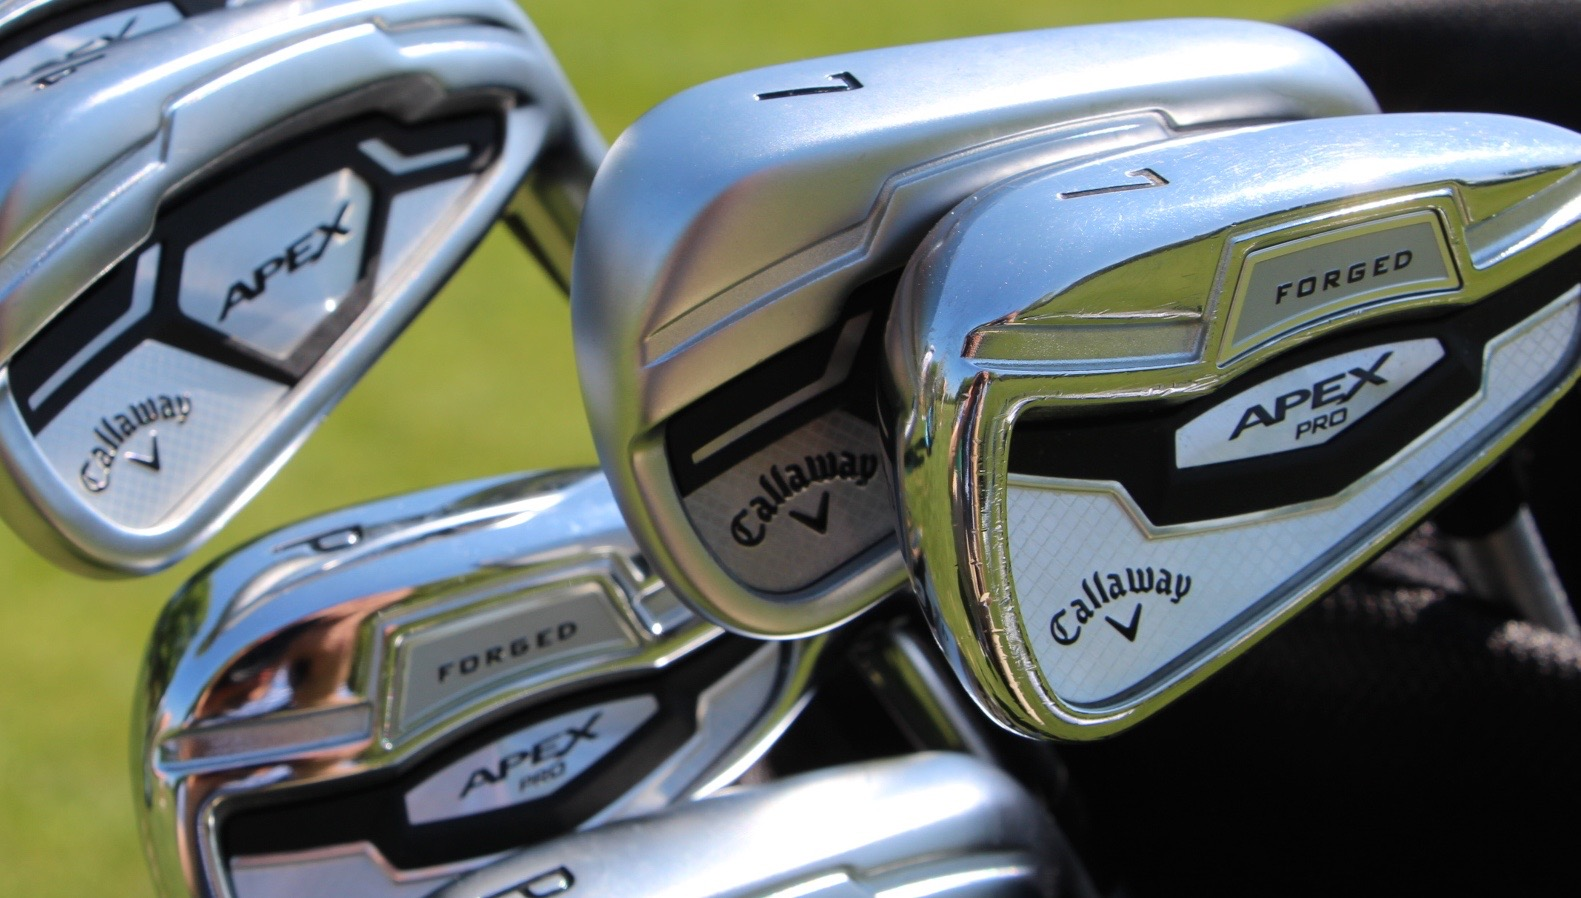 Head To Head Testing Callaways 2016 Apex And Apex Pro Irons Golfwrx